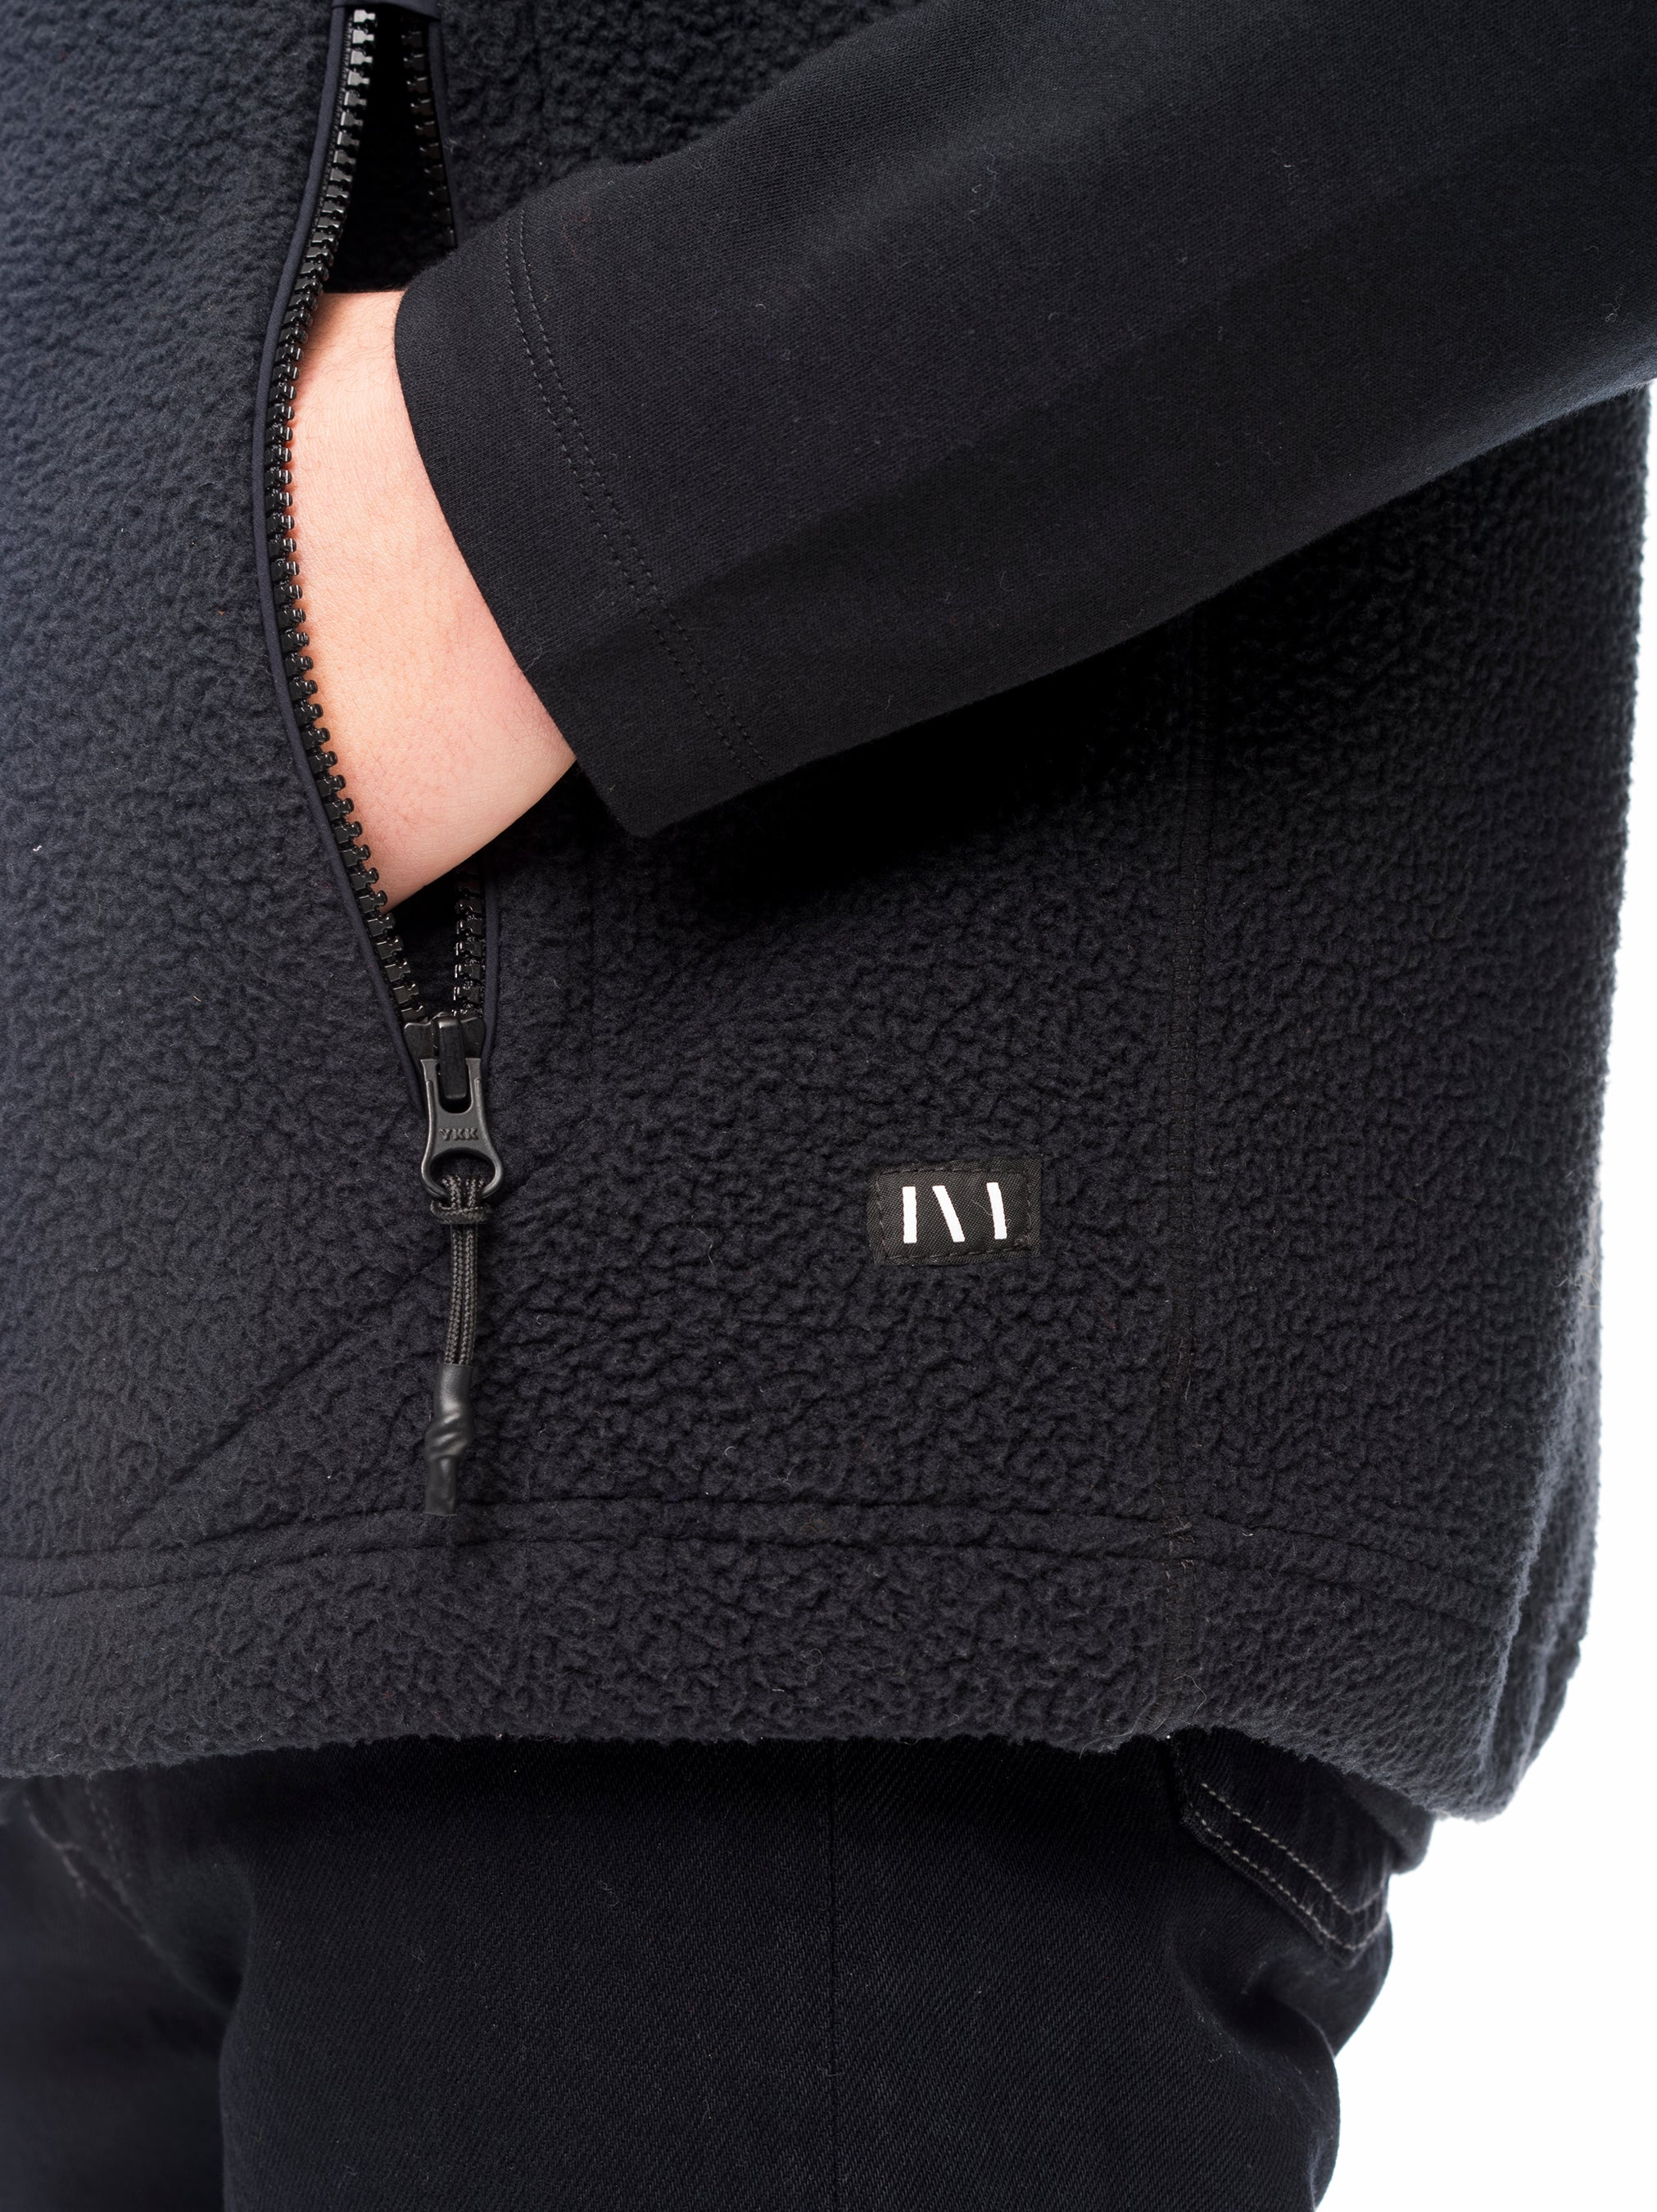 Fleece Fleece Vest - Black [bomber_Vandal], [The Very Warm], [The Very Warm]